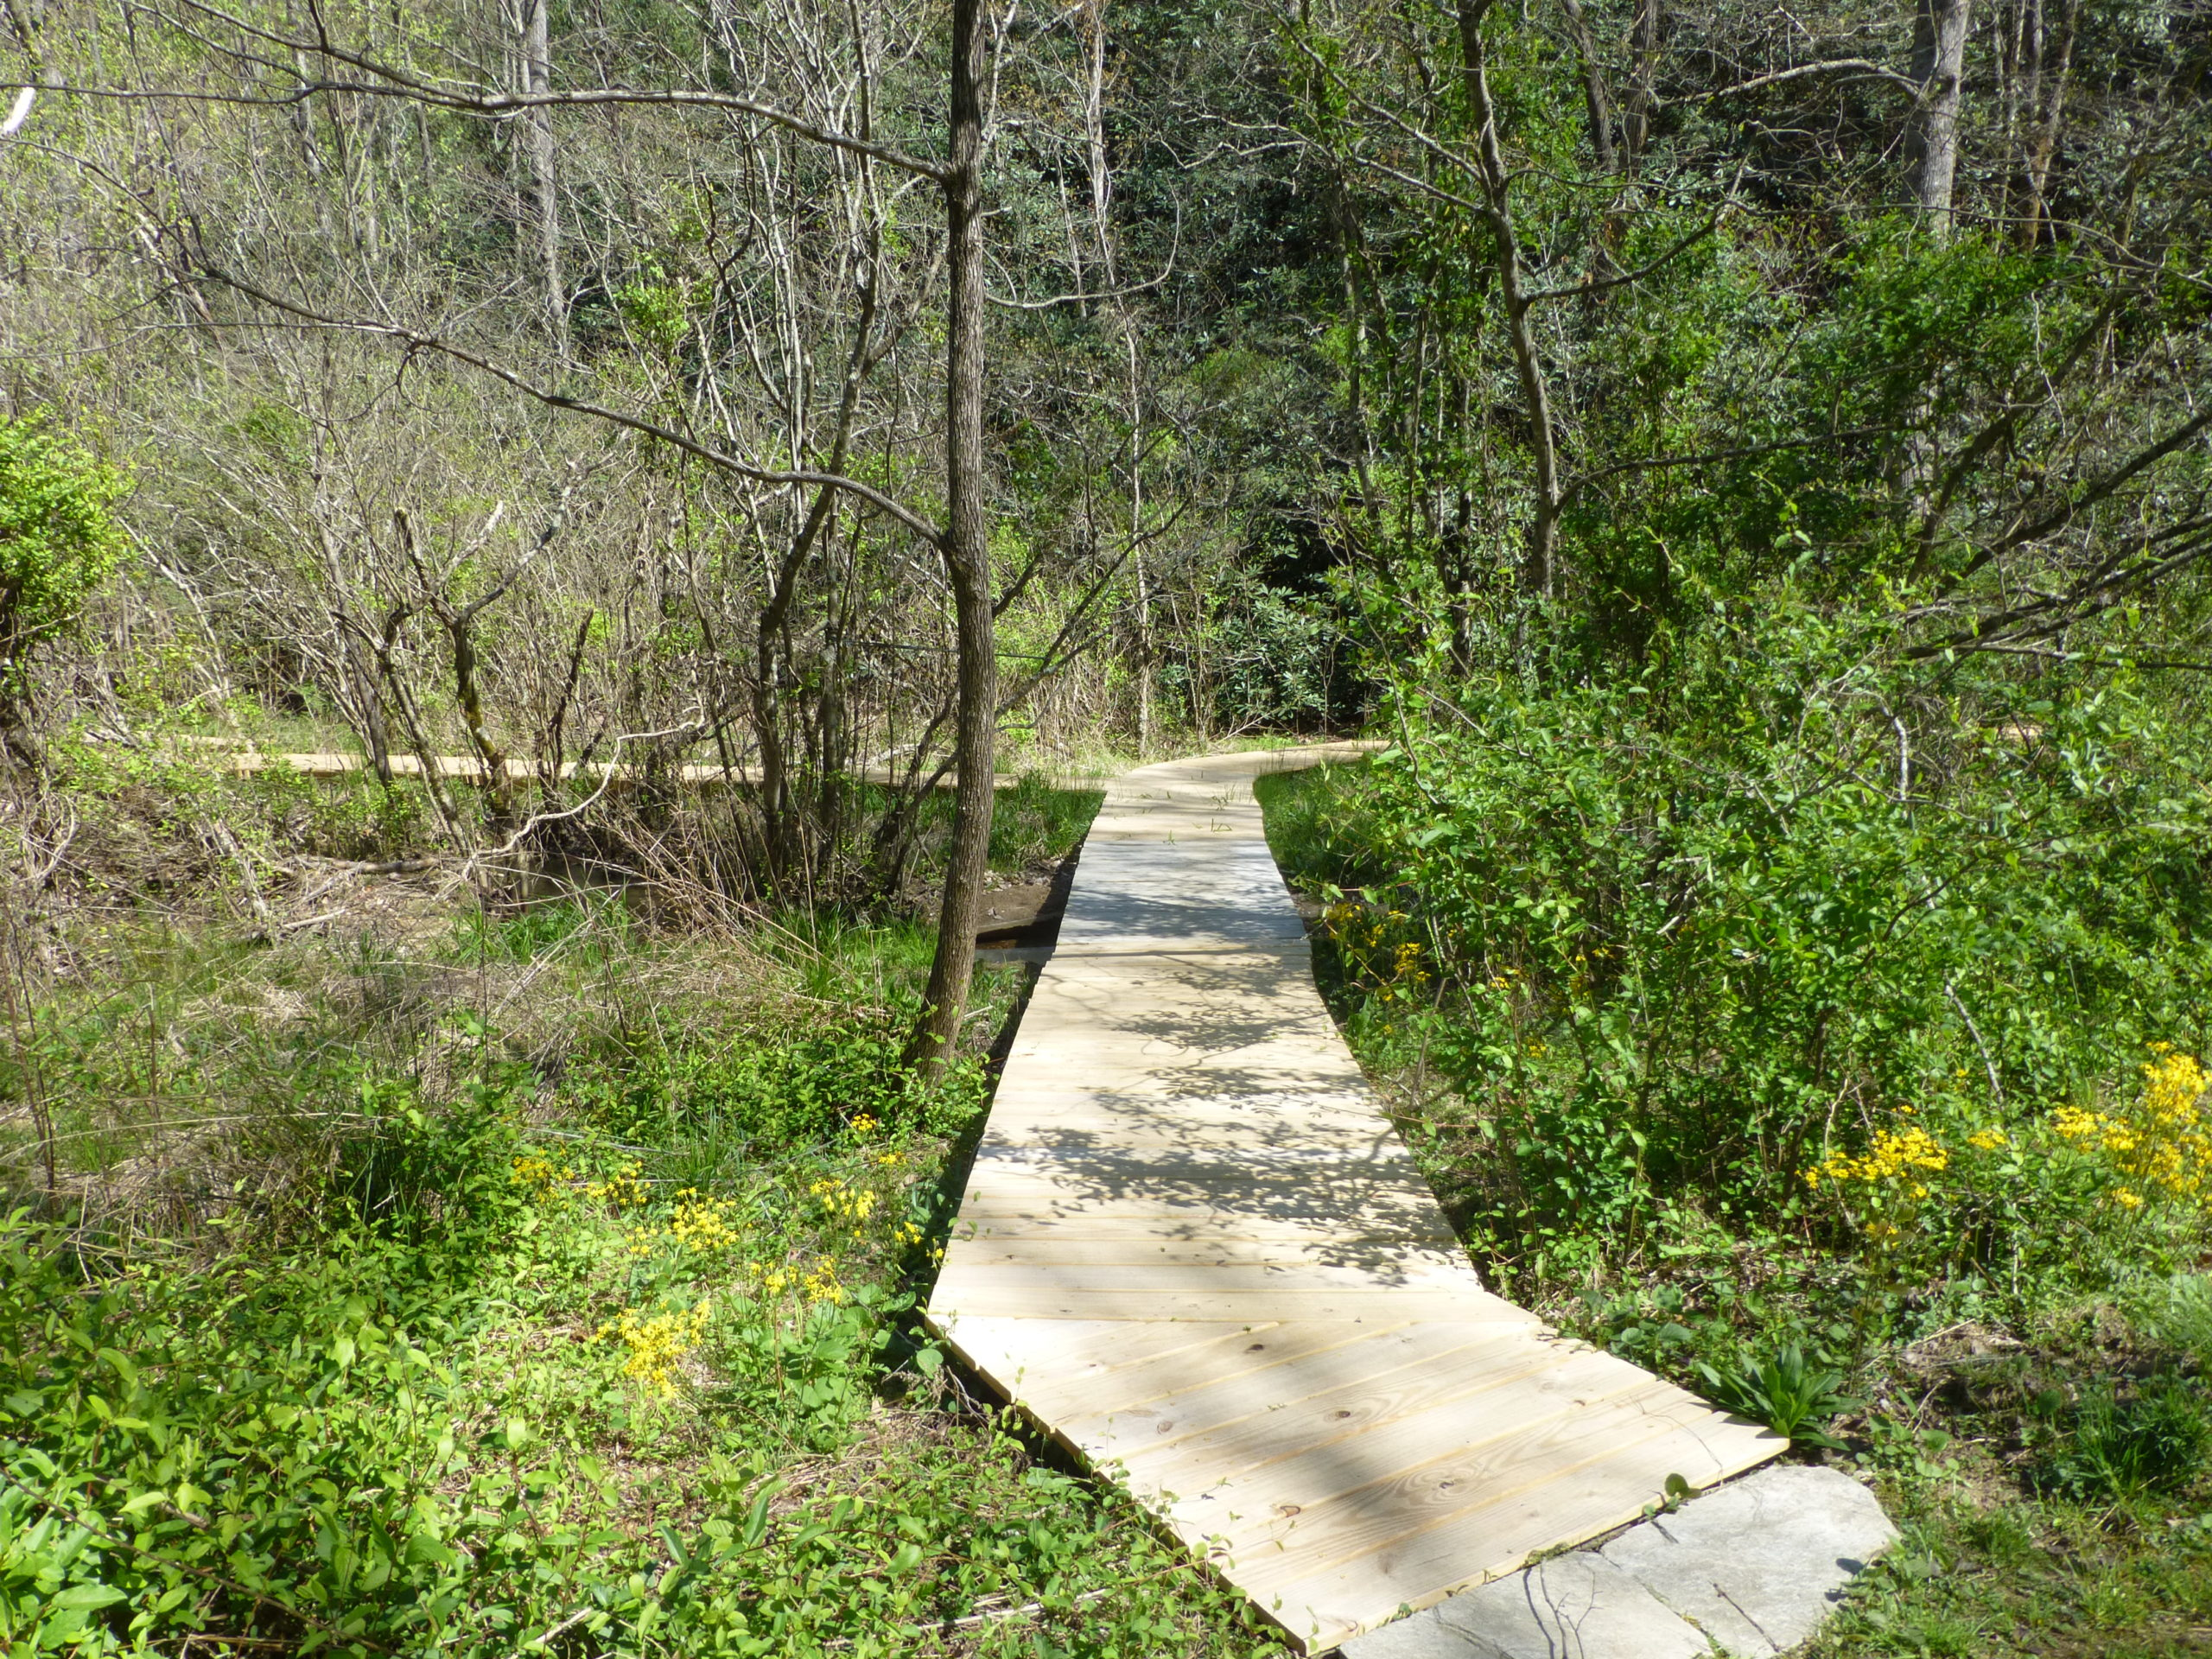 Boardwalk leading into an area with trees and shrubs